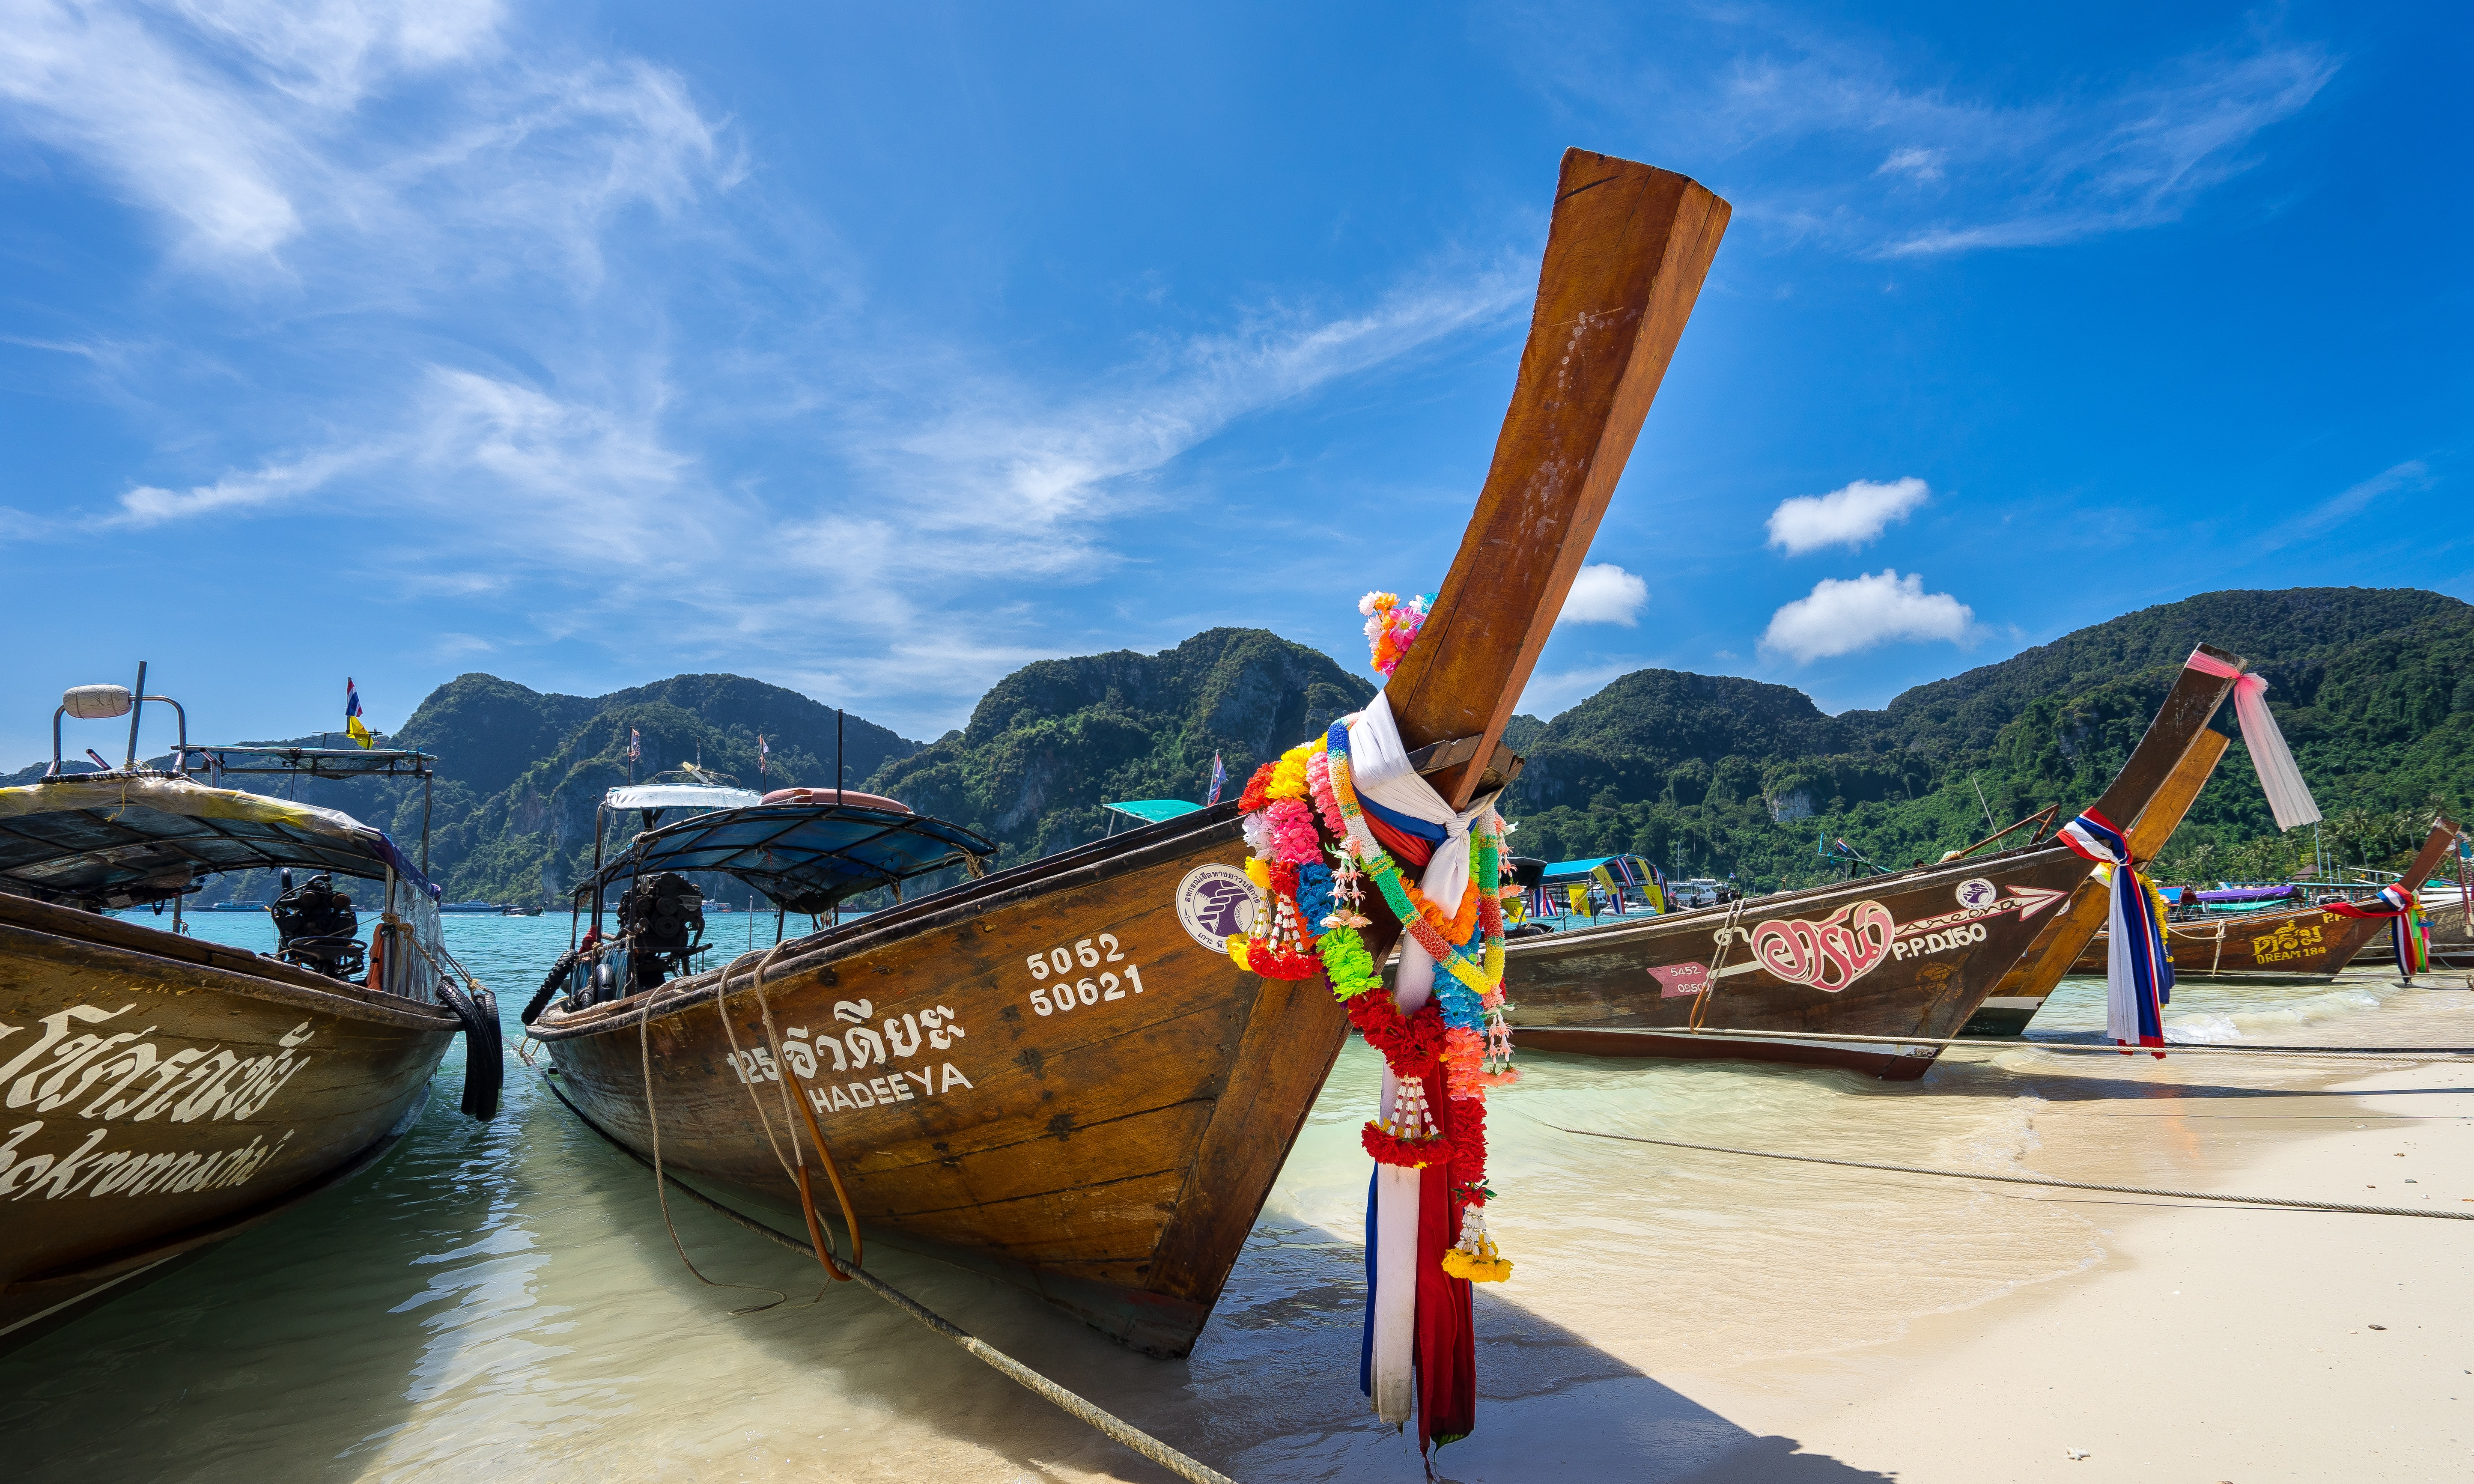 child friendly places in Thailand